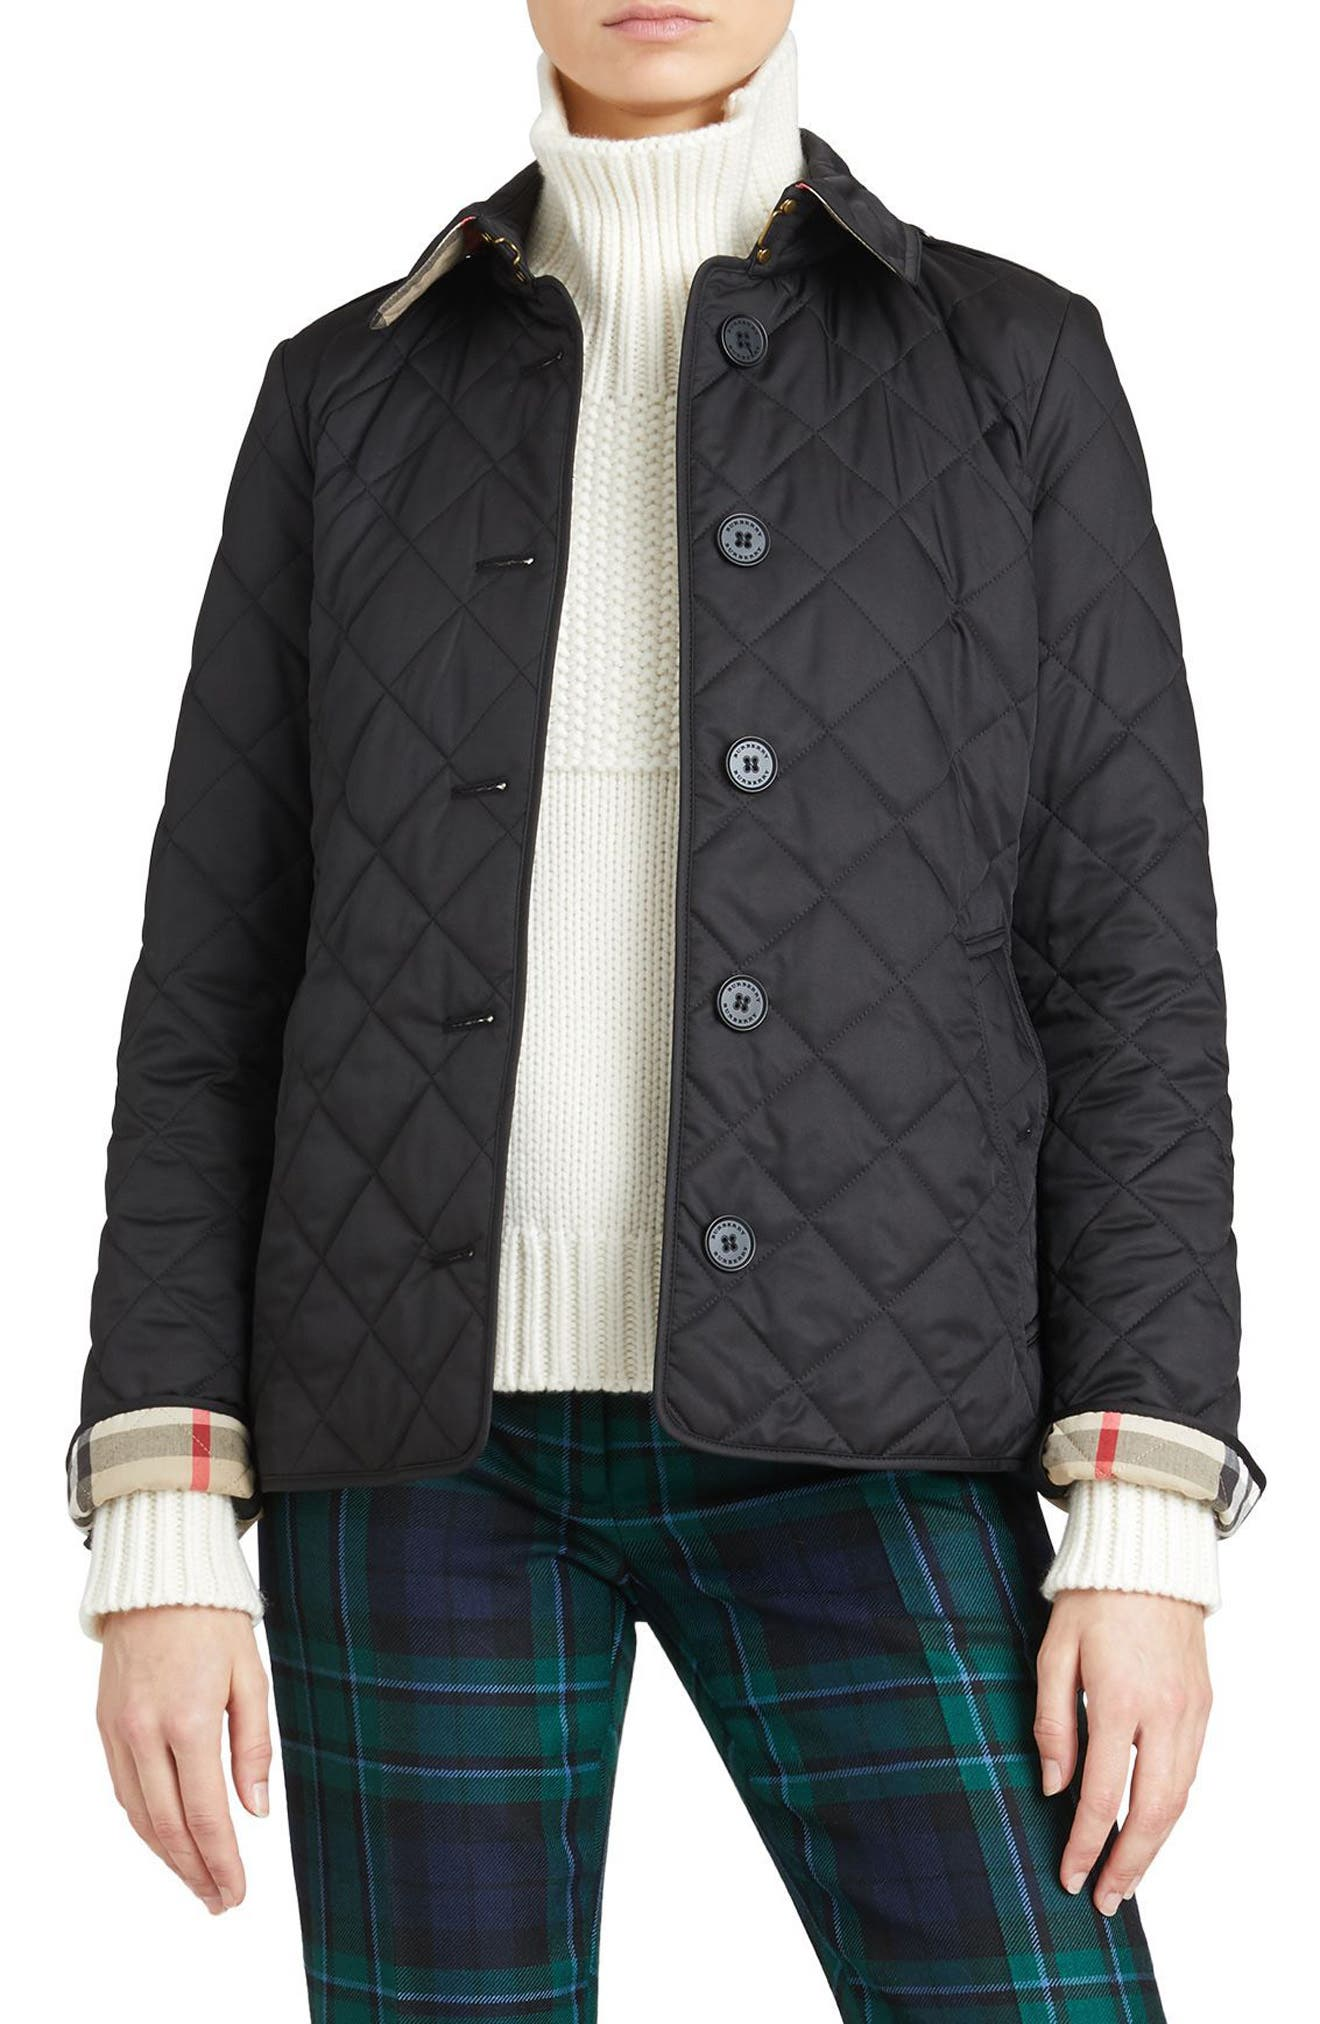 BURBERRY, Frankby Quilted Jacket, Main thumbnail 1, color, 001